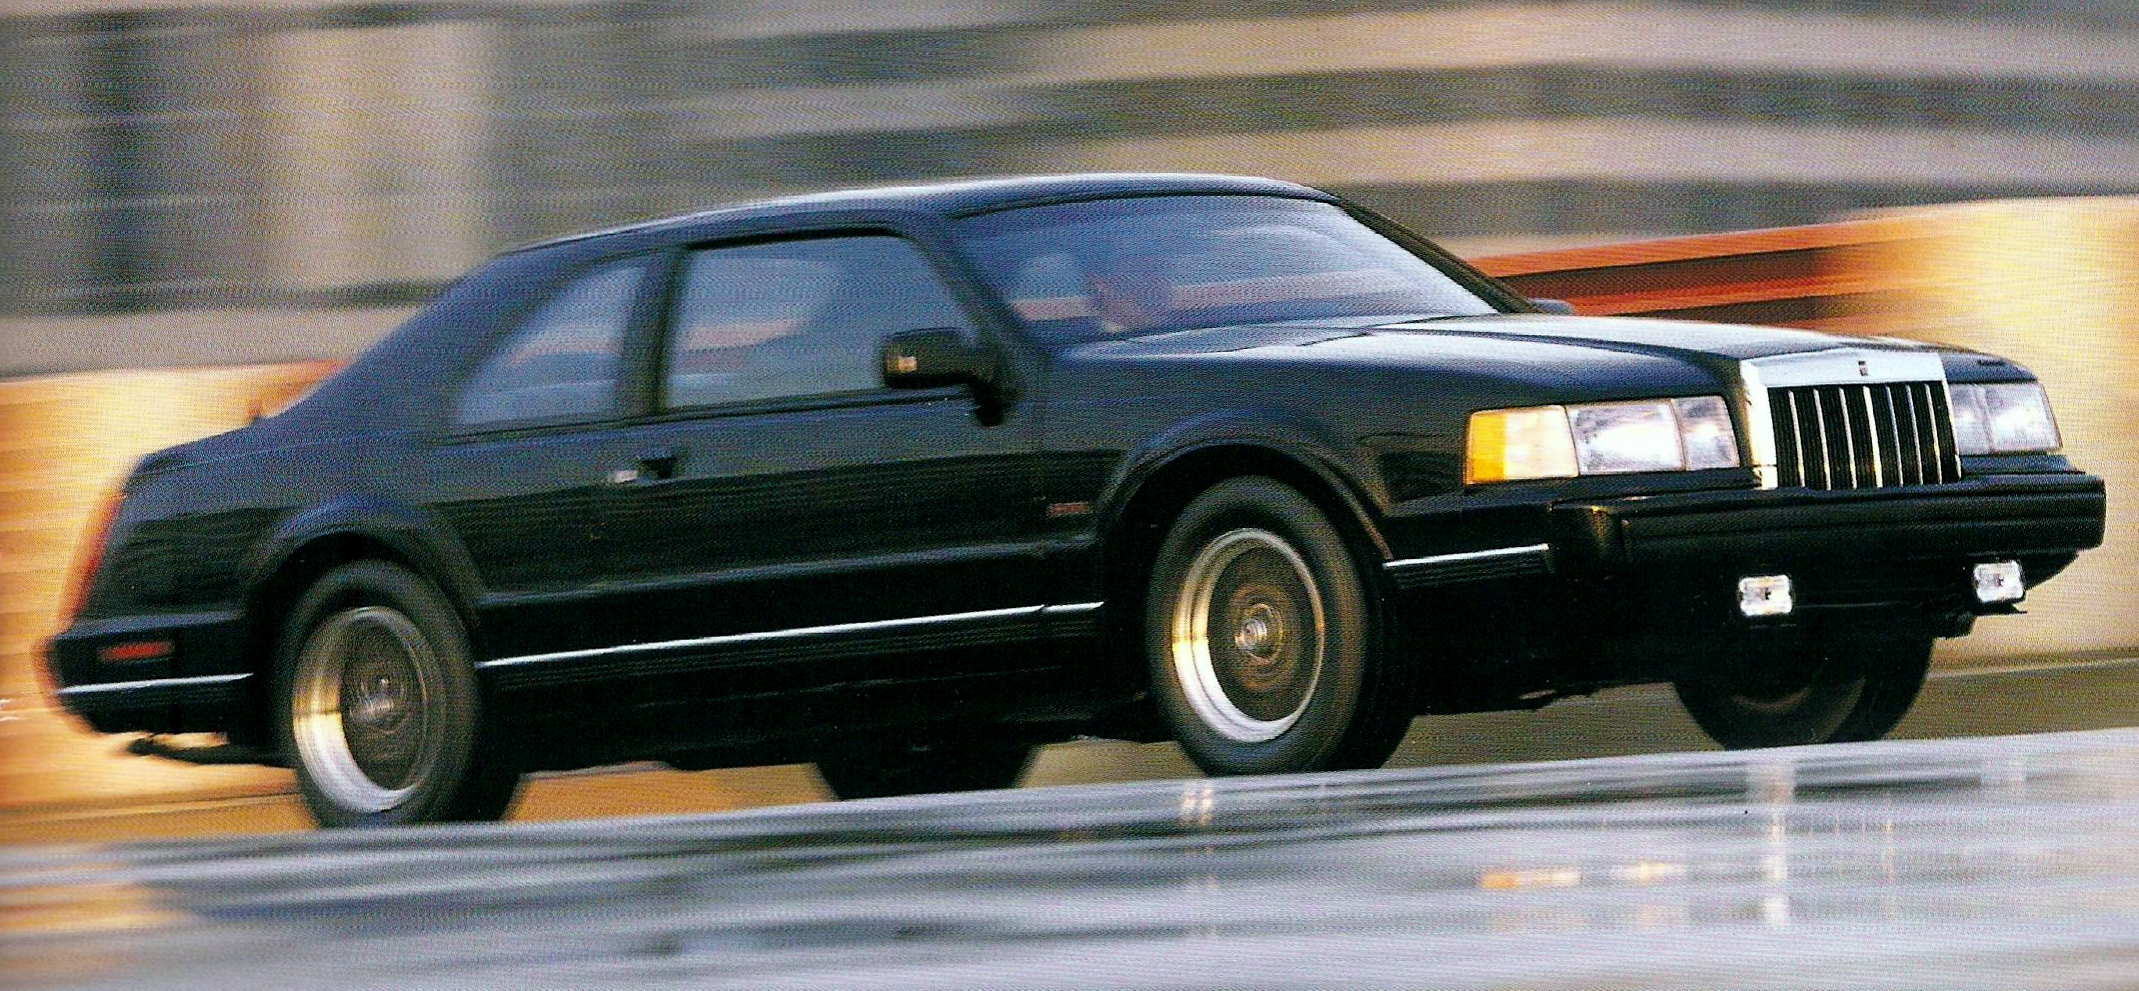 The mark vii was the first mark that could seriously be called a driver s car the styling is pretty timeless and doesn t look dated even today